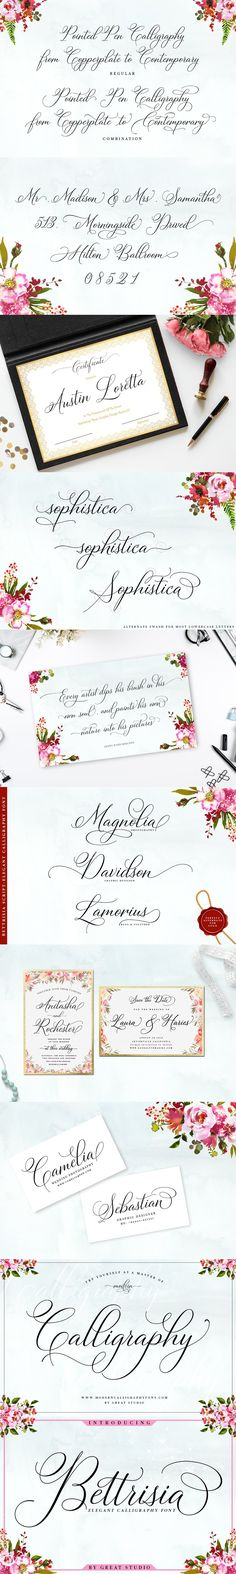 Bettrisia Script is a modern and elegant calligraphy script font that comes with very beautiful character changes, a kind of classic decorative copper script Modern Fonts, Elegant Fonts, Open Type, Menu Design, Menu Restaurant, Script Fonts, Font Styles, Cool Fonts, Glyphs